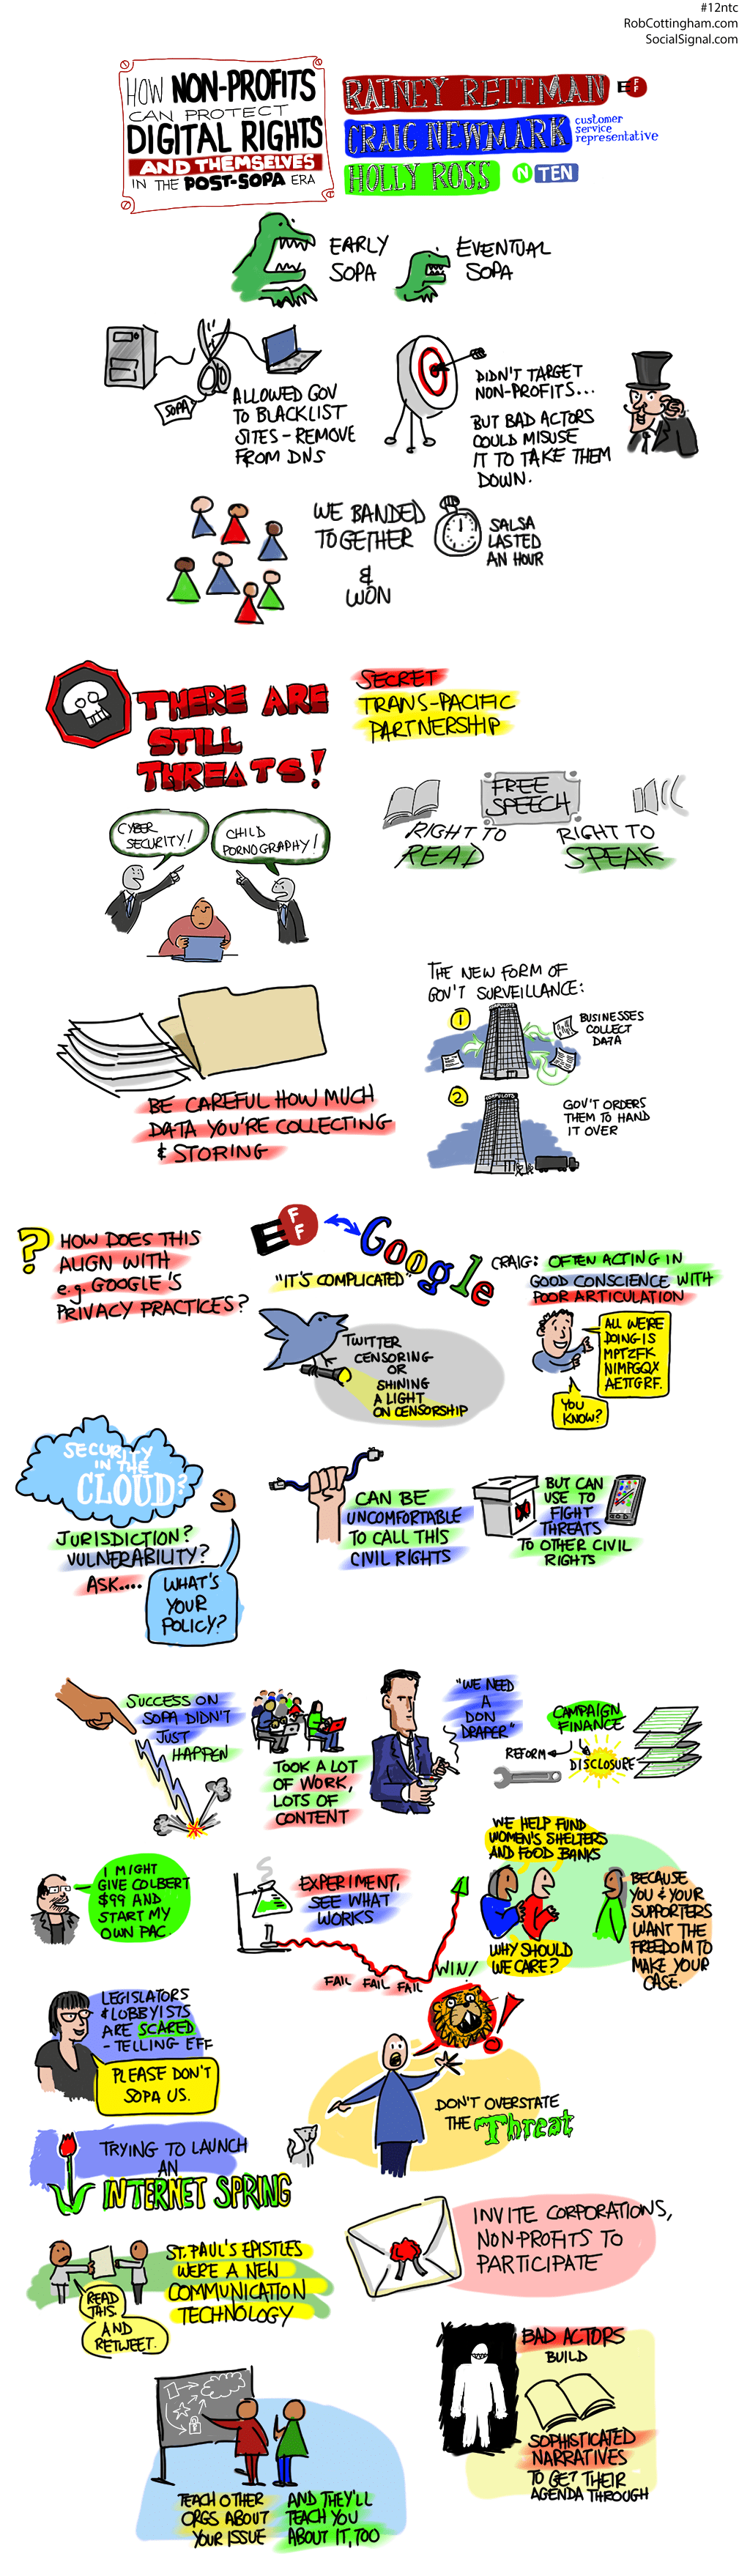 Notes from a session on digital activism